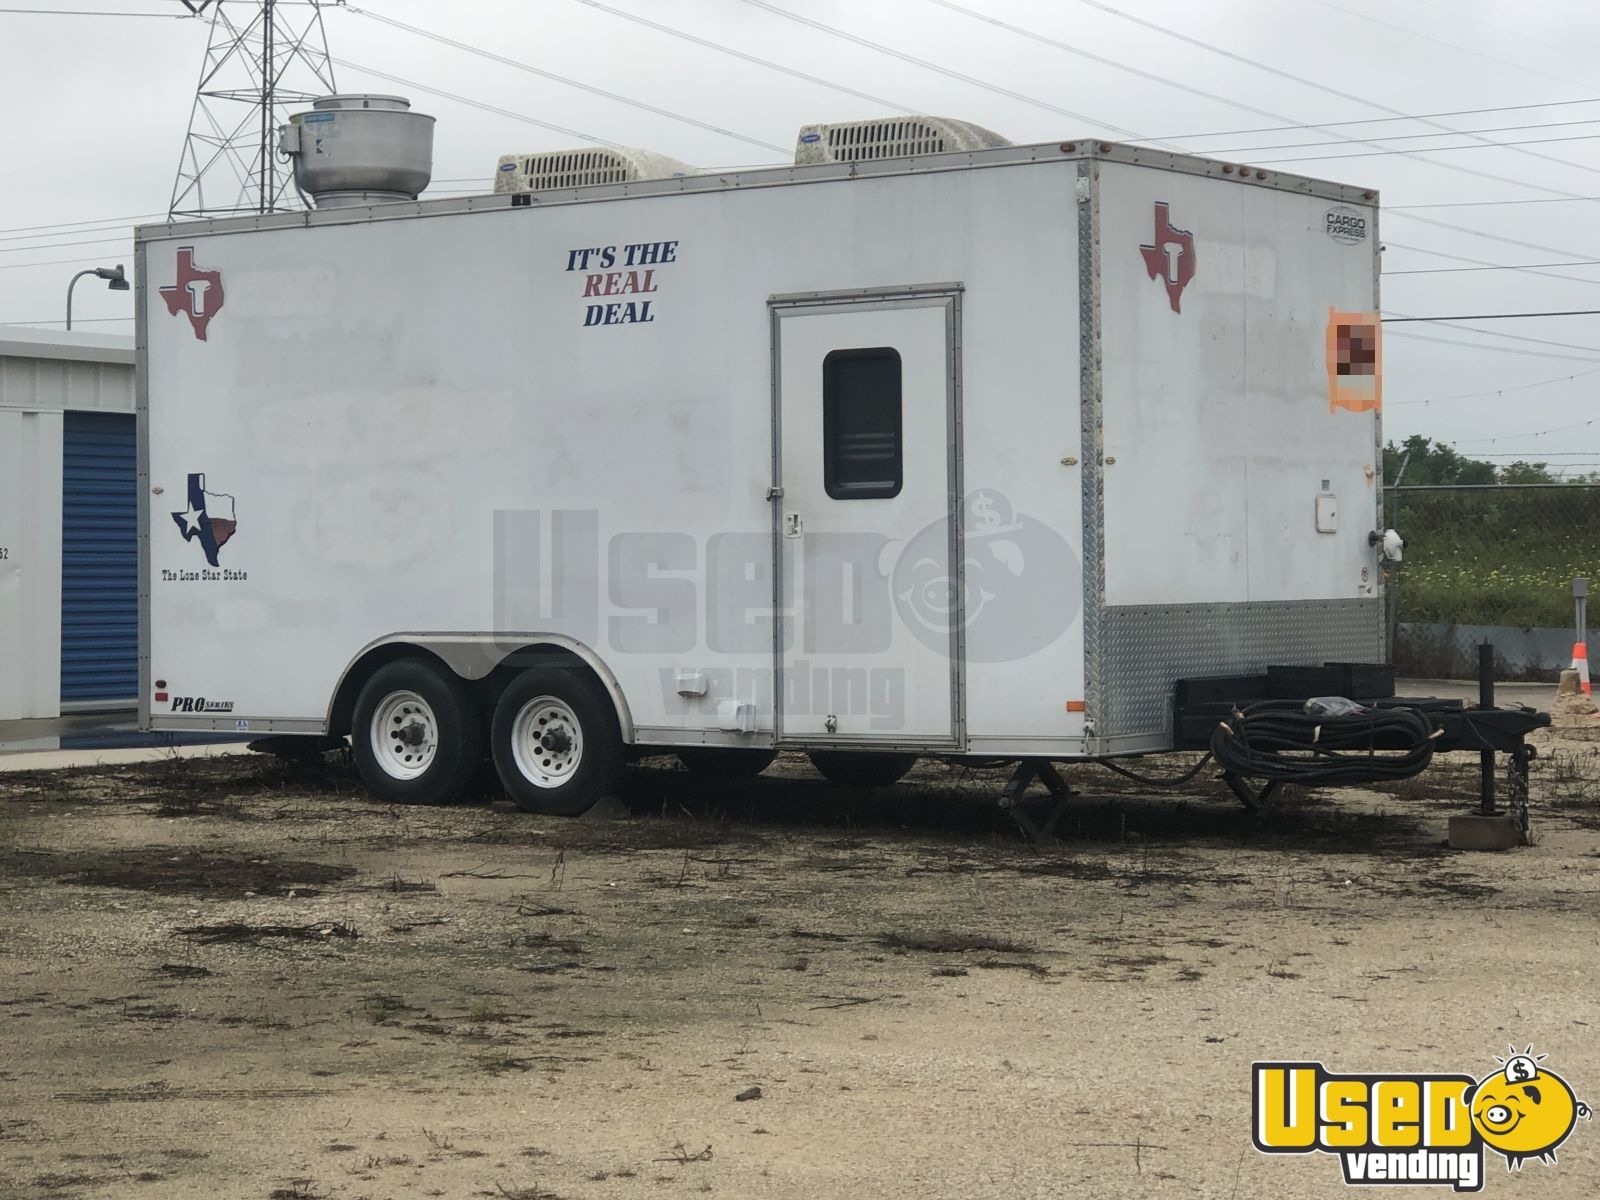 2008 Food Concession Trailer Kitchen Food Trailer Awning Texas for Sale - 6